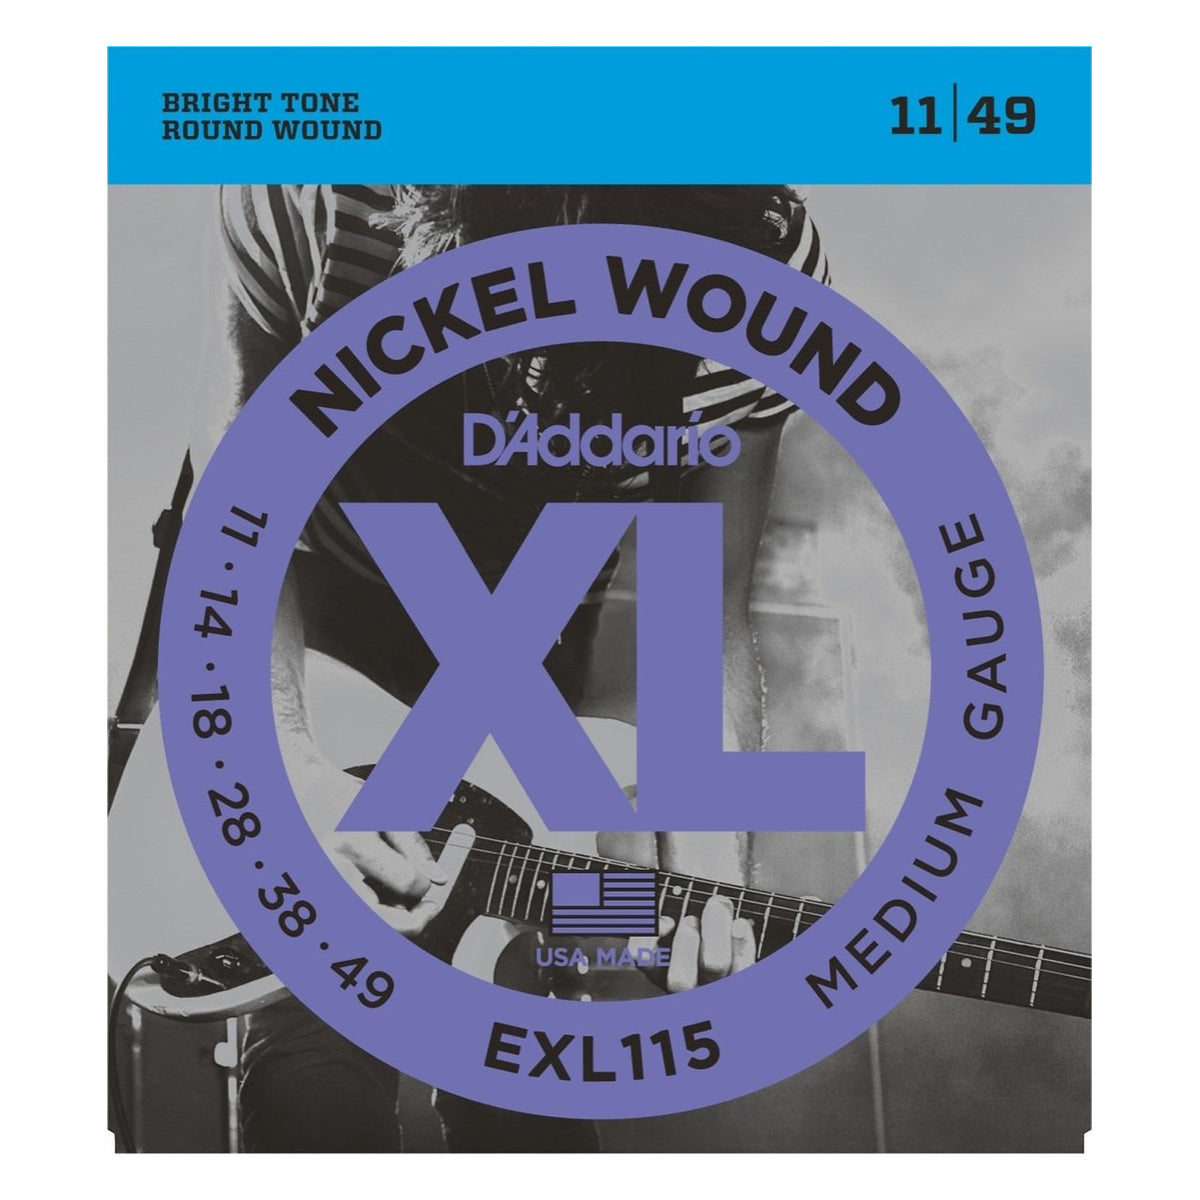 D'Addario EXL115 XL Electric Guitar Strings (Blues/Jazz Rock, 11-49)